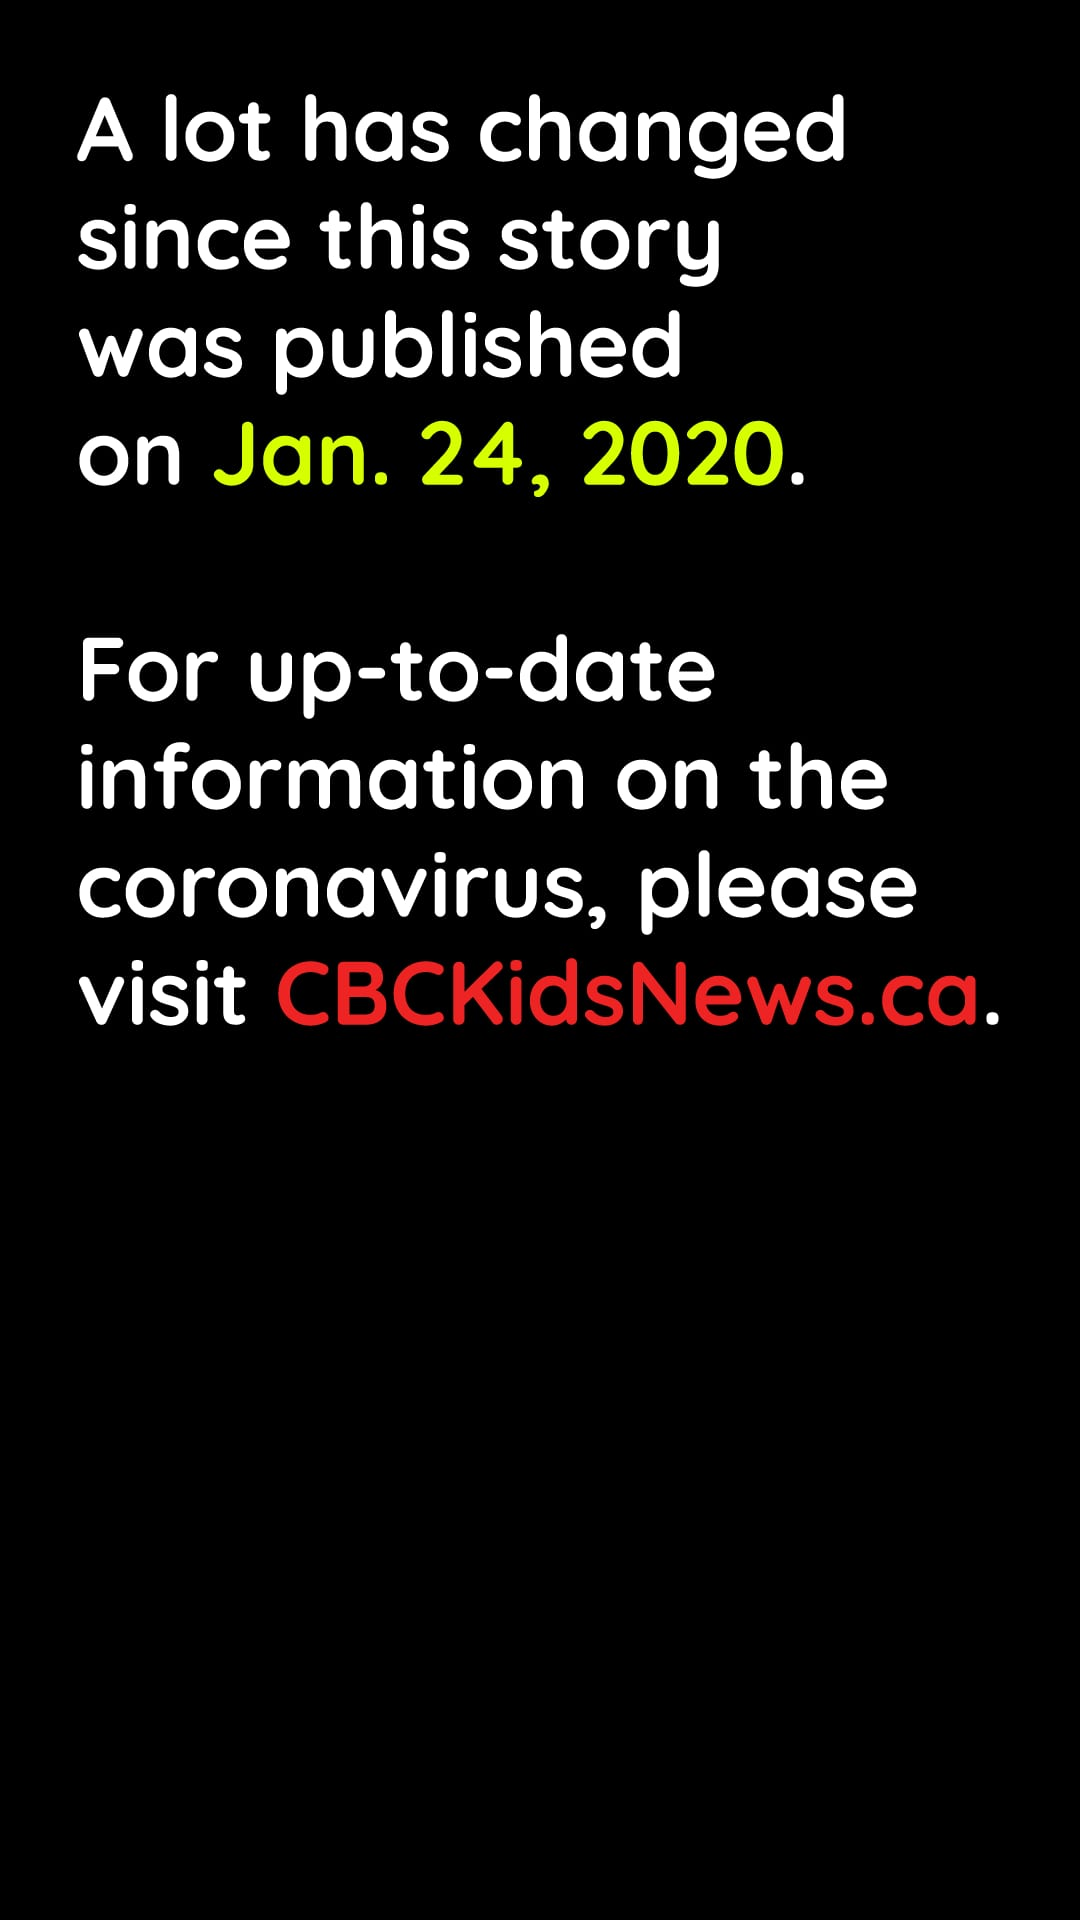 A lot has changed since this story was published on Jan. 24, 2020.  For up-to-date information on the coronavirus, please visit CBCKidsNews.ca.